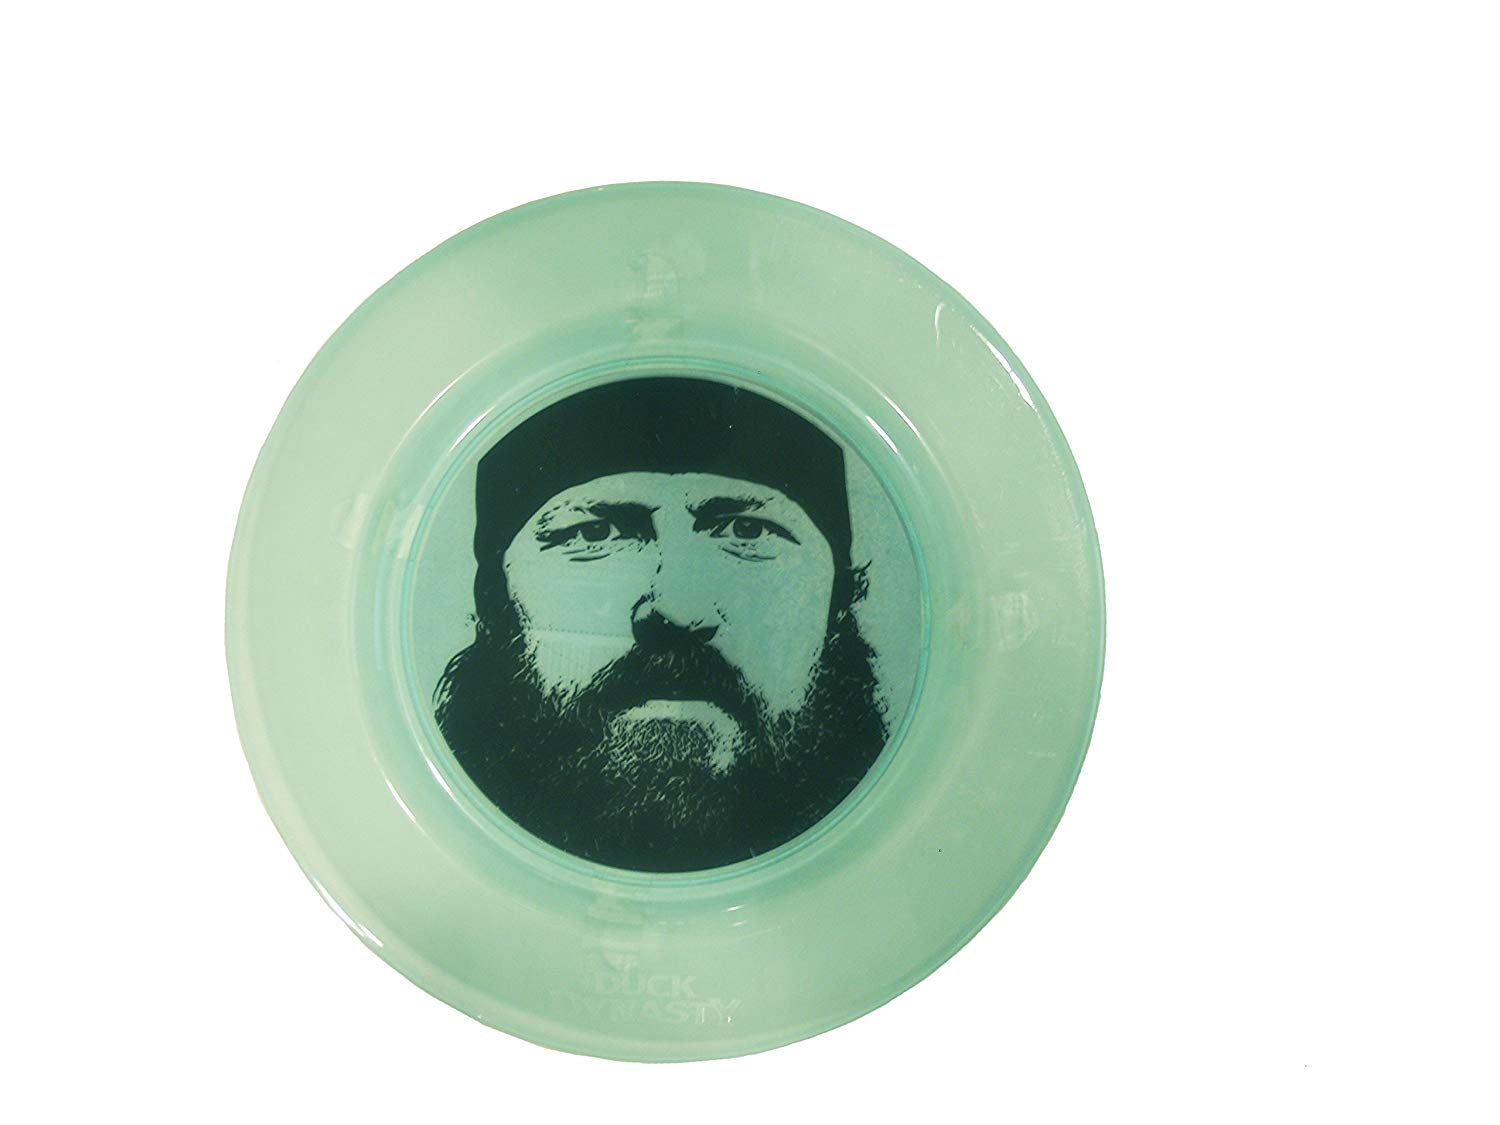 Duck Dynasty Jase Robertson Face Plate - Teal